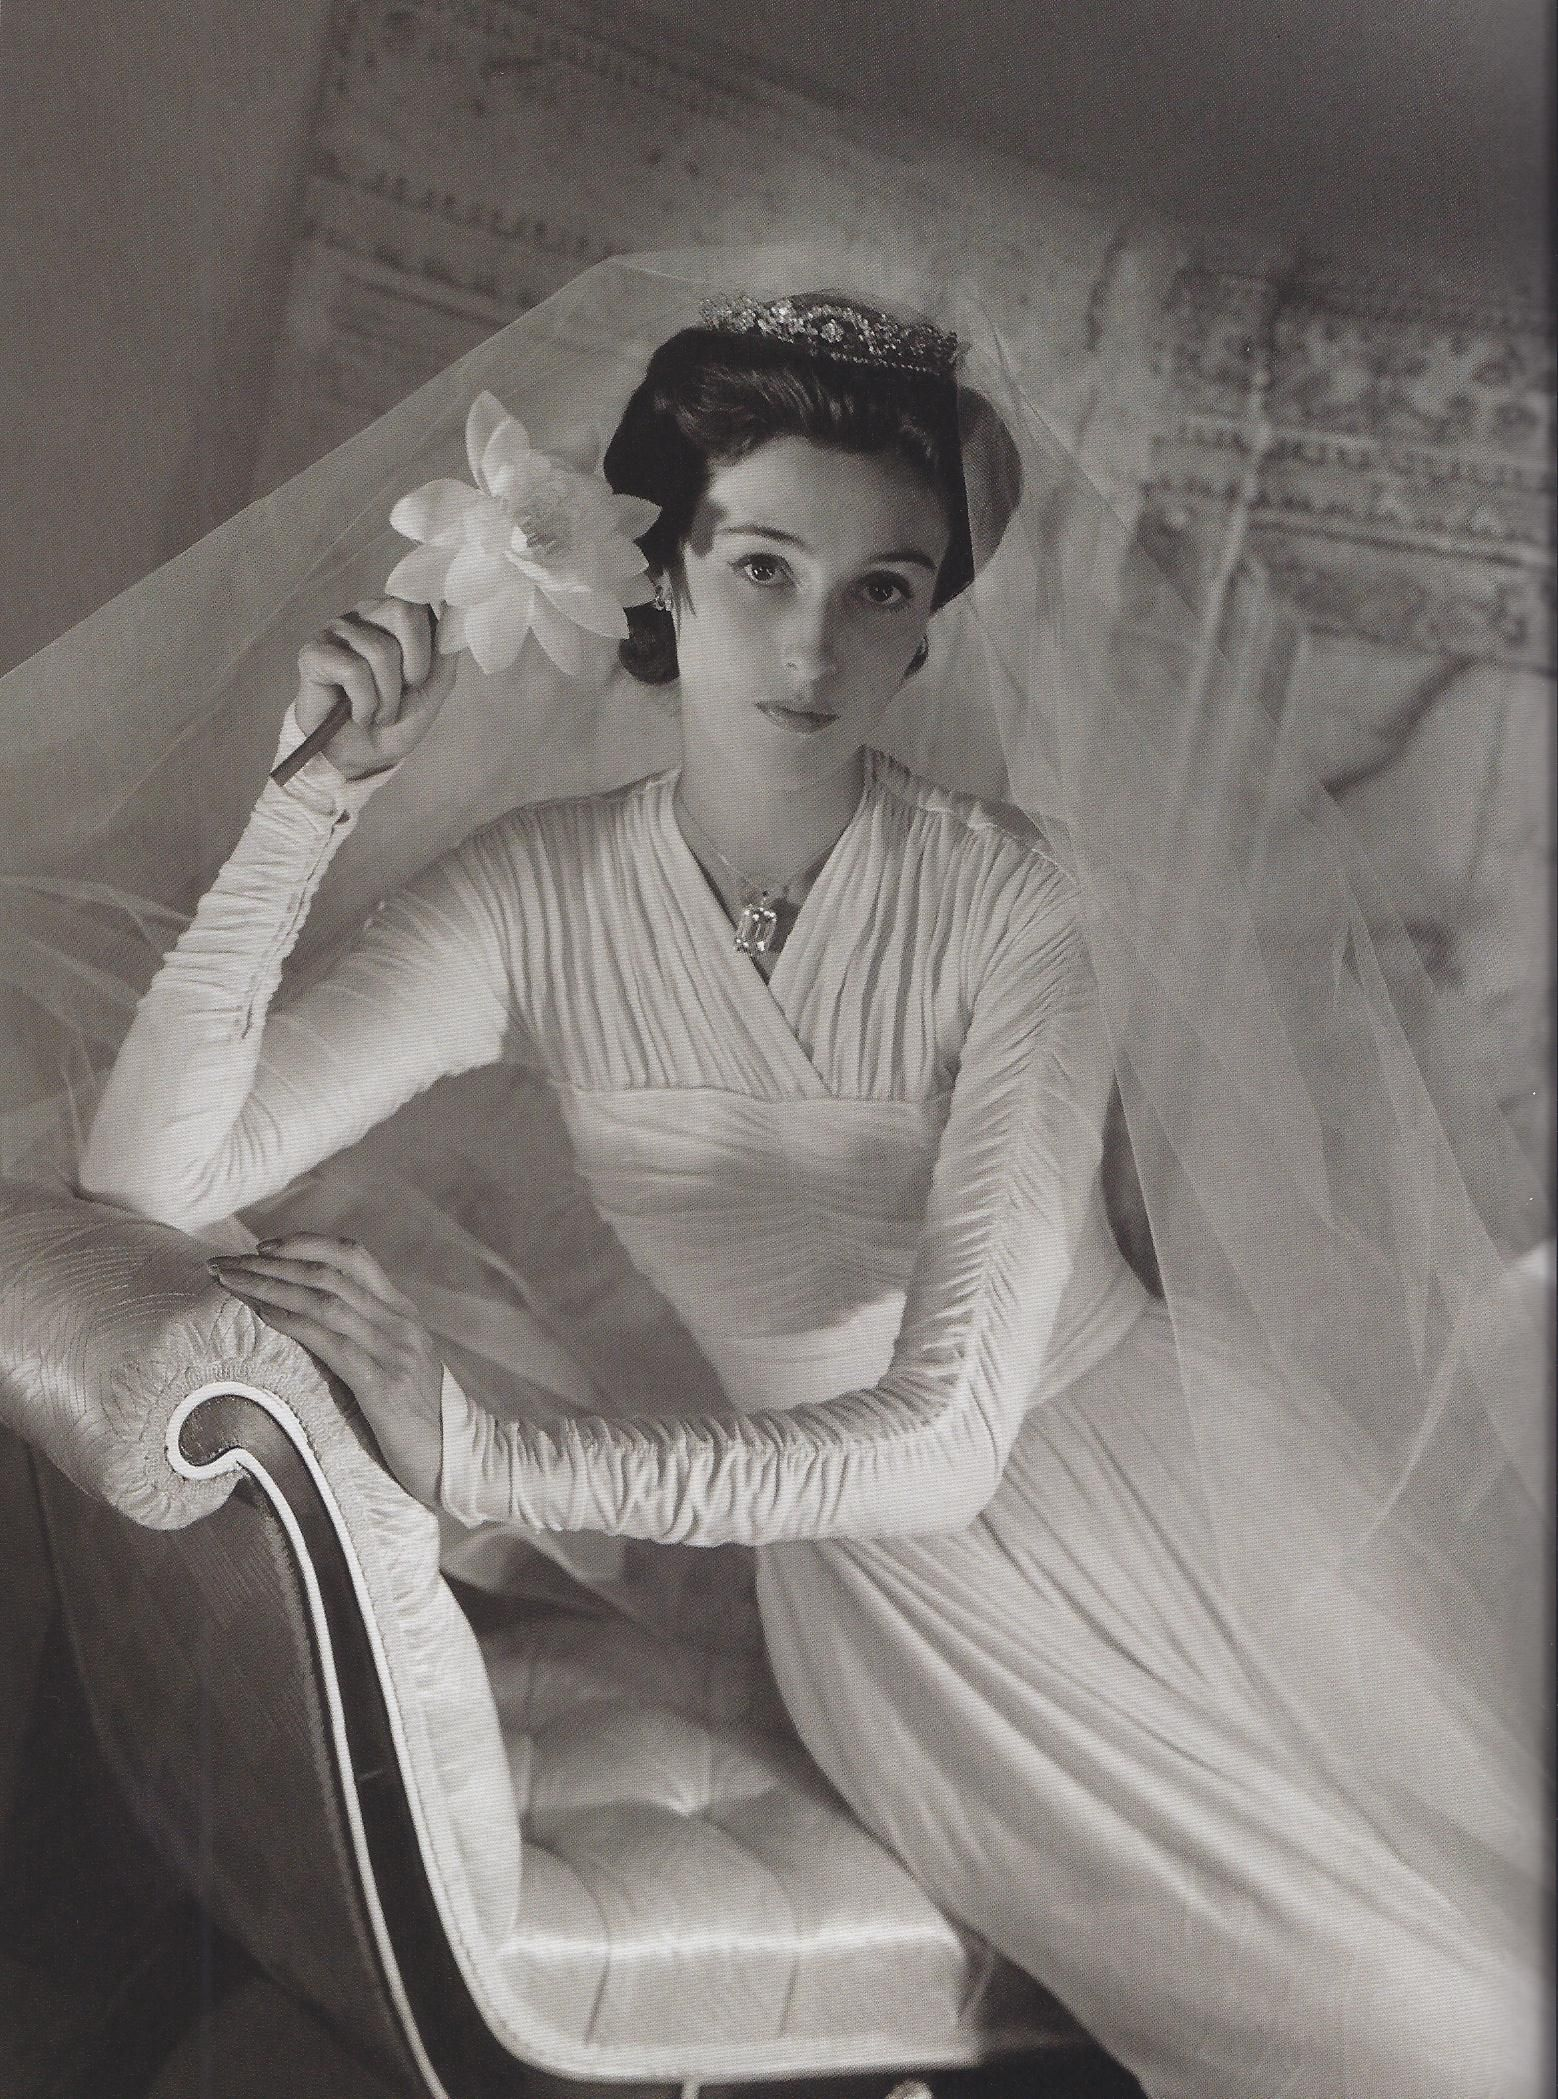 Us wedding gown by mabel mcilvain downs found in